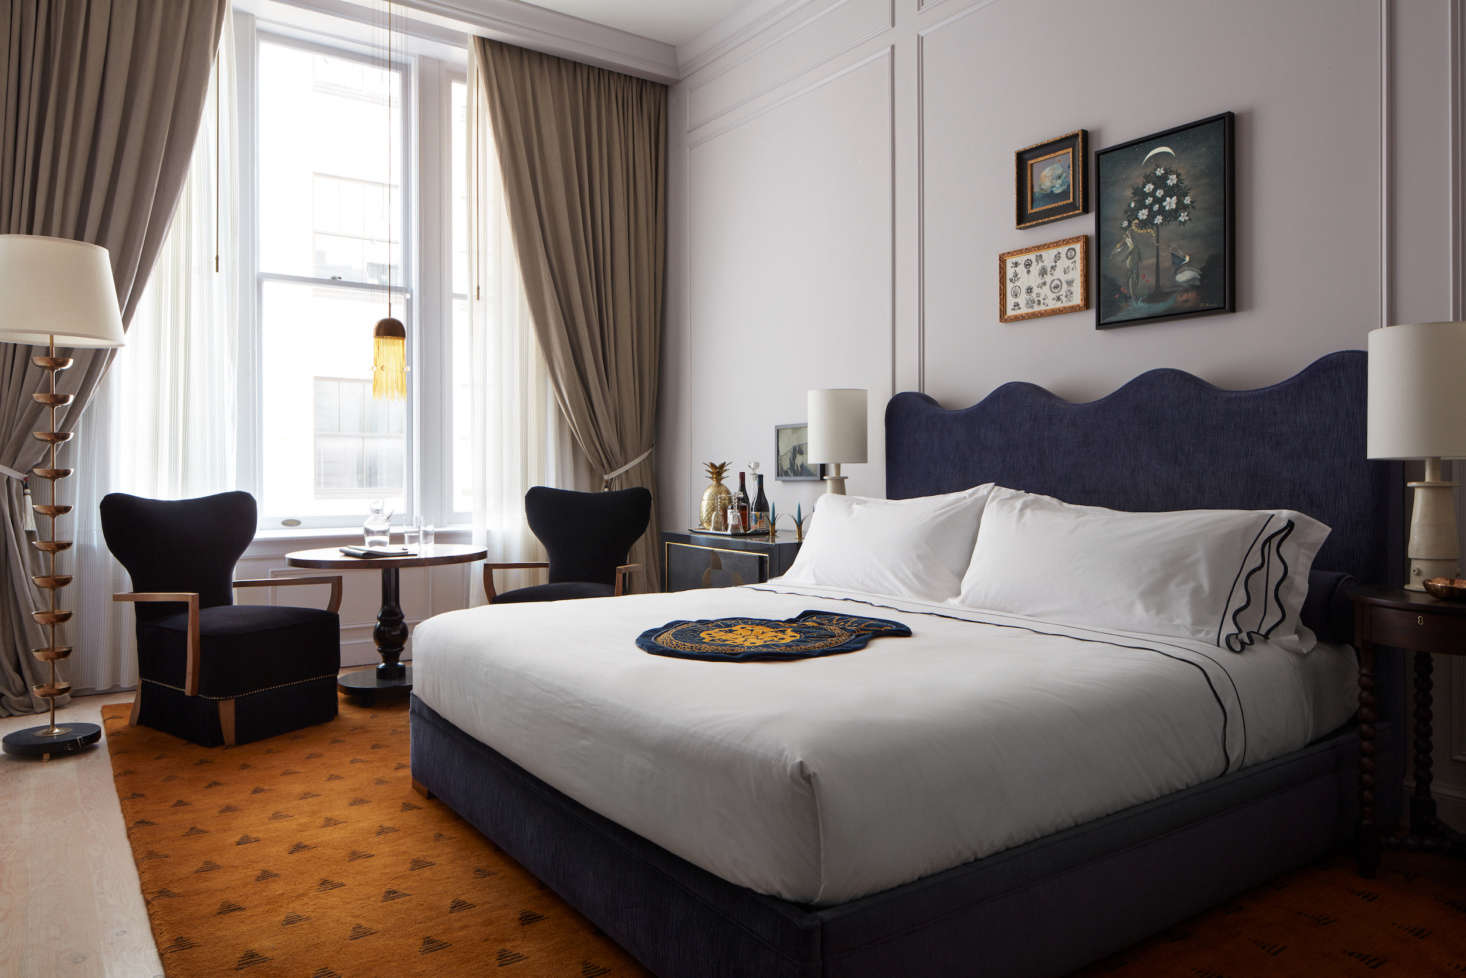 Guest bedrooms feature ochre-colored rugs, muted walls, and glam fittings.